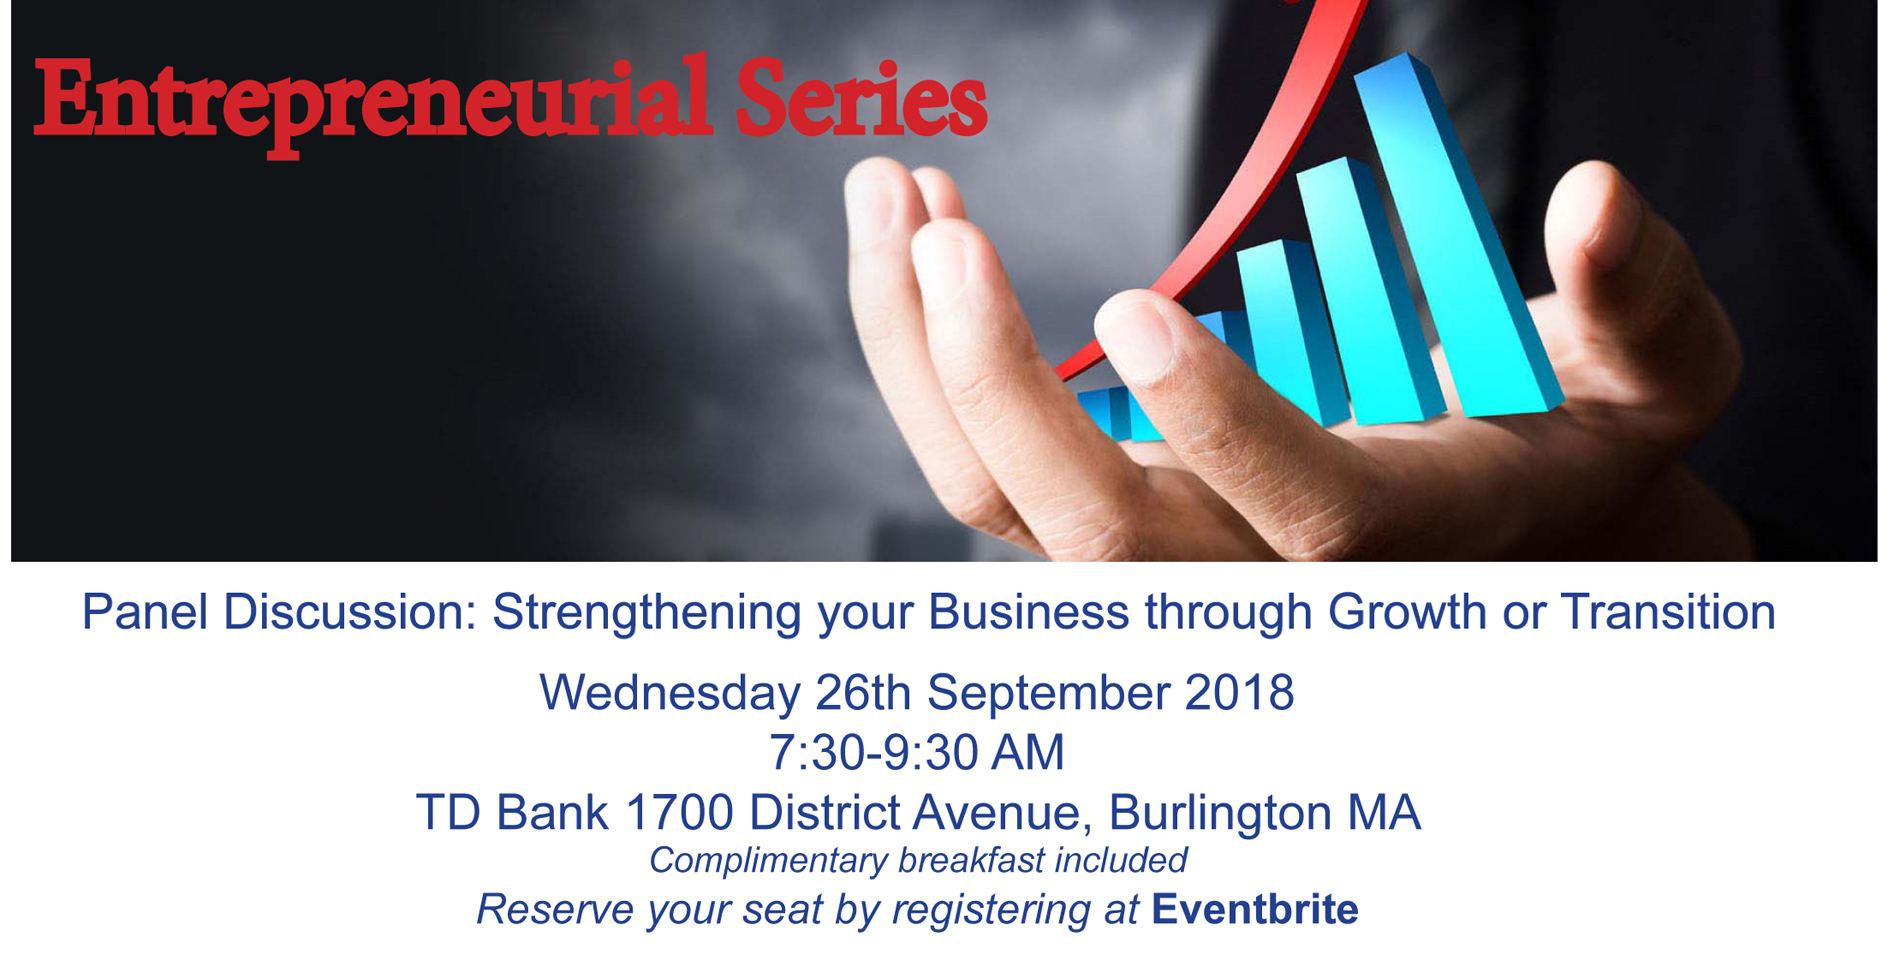 Panel Discussion - Strenghtening your Business through Growth or Transition